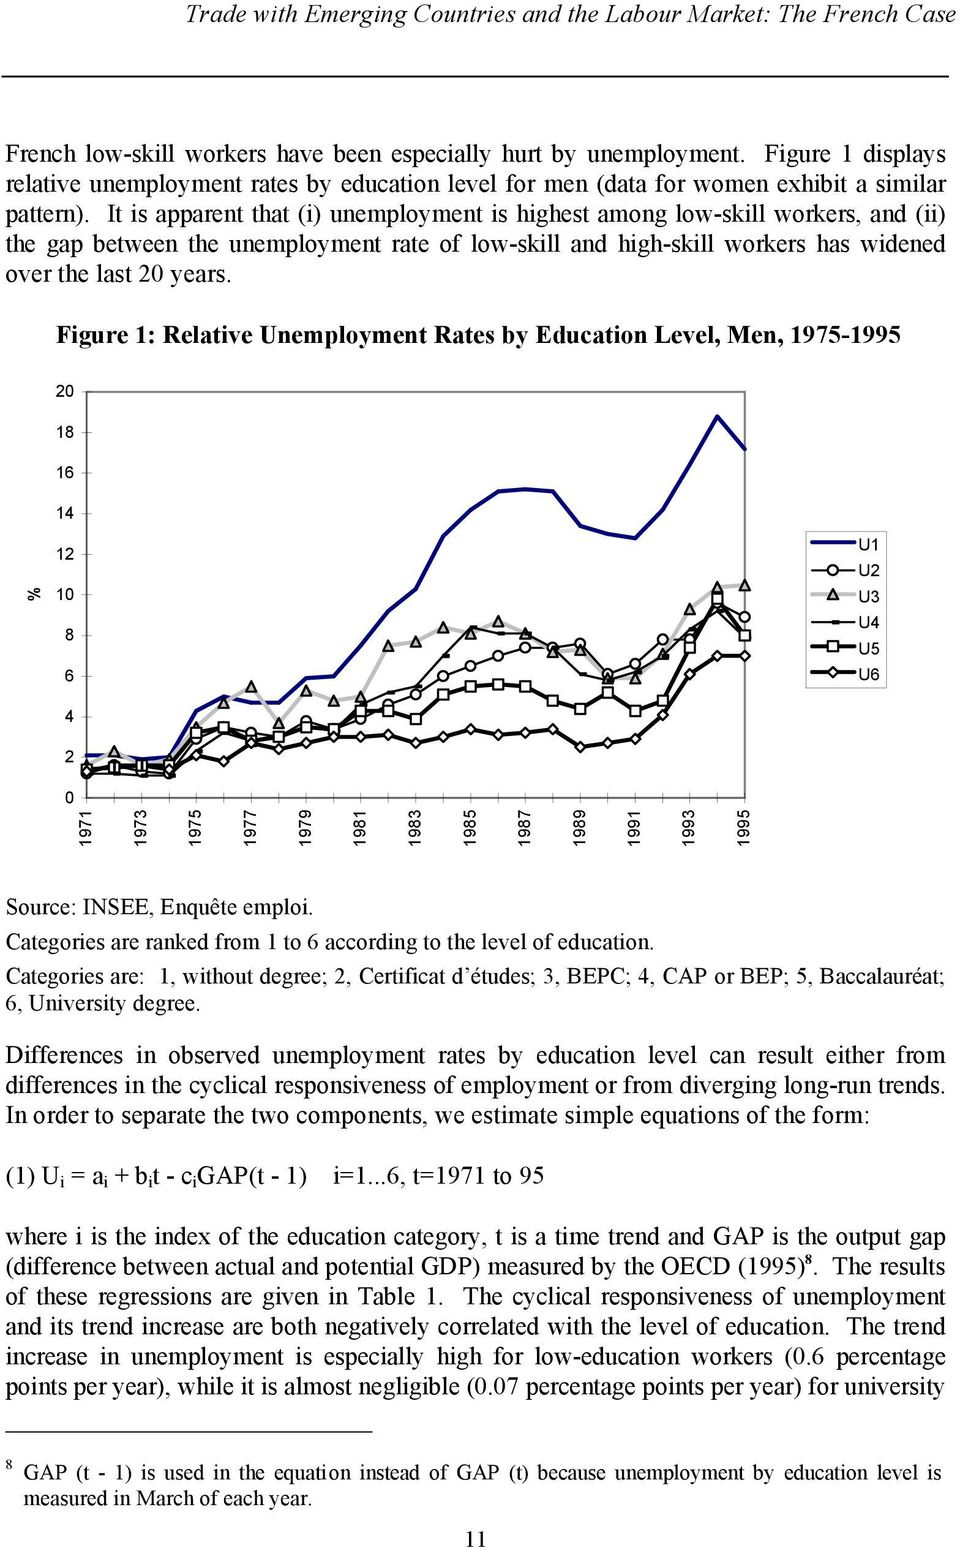 It is apparent that (i) unemployment is highest among low-skill workers, and (ii) the gap between the unemployment rate of low-skill and high-skill workers has widened over the last 20 years.